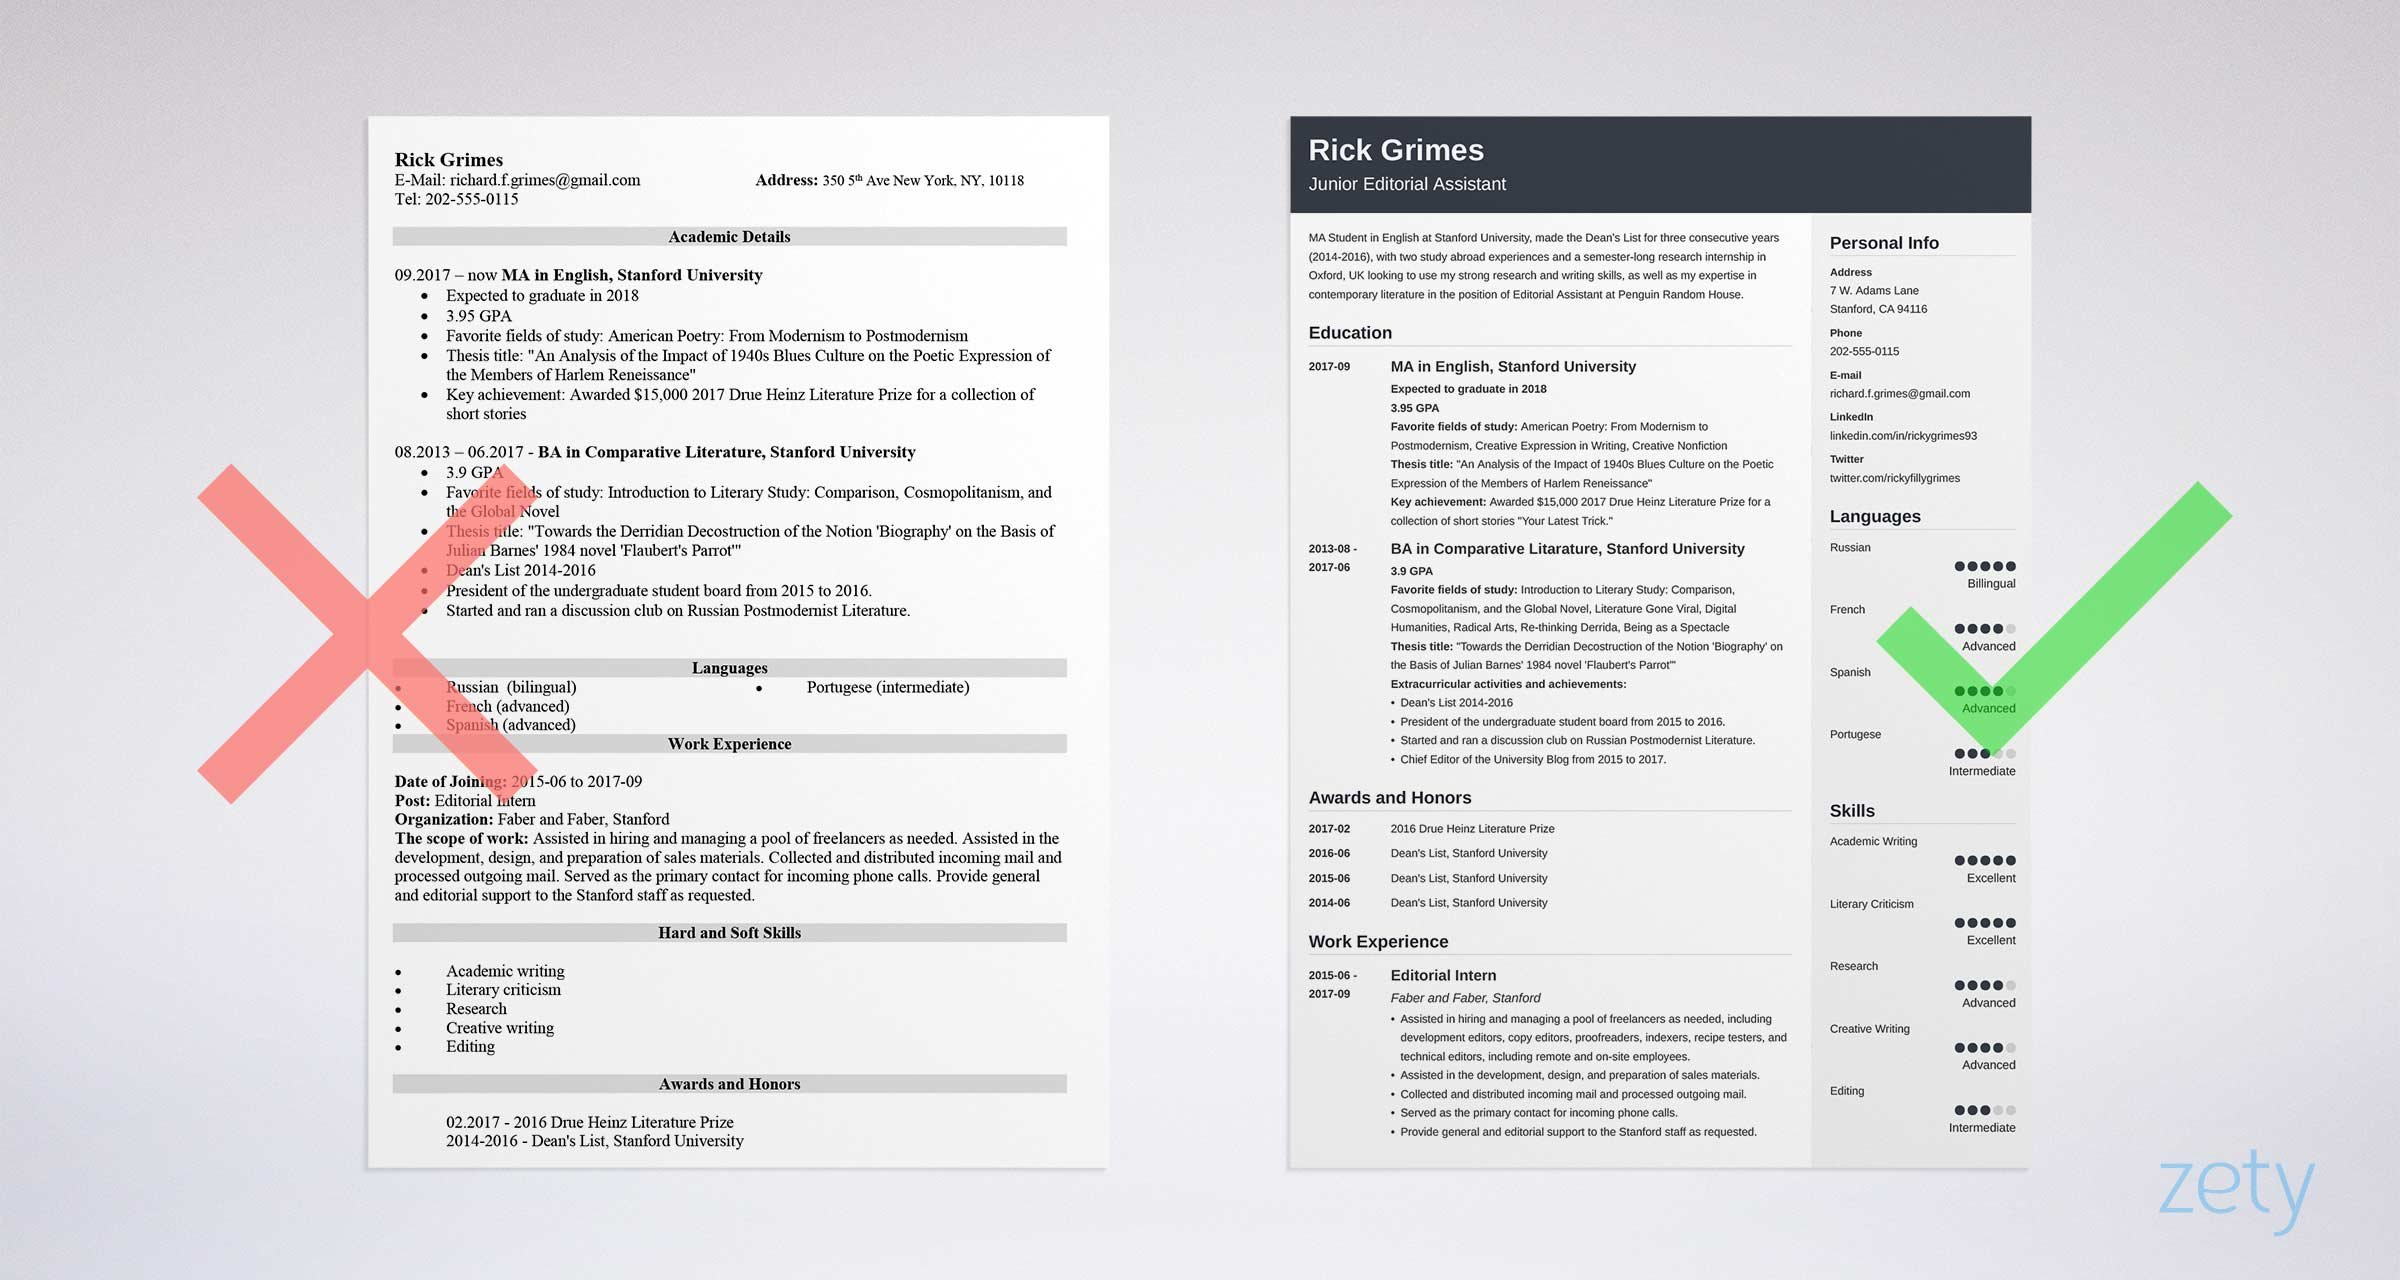 Entry Level Data Scientist Resume Sample - Entry Level Resume Sample and Plete Guide [ 20 Examples]